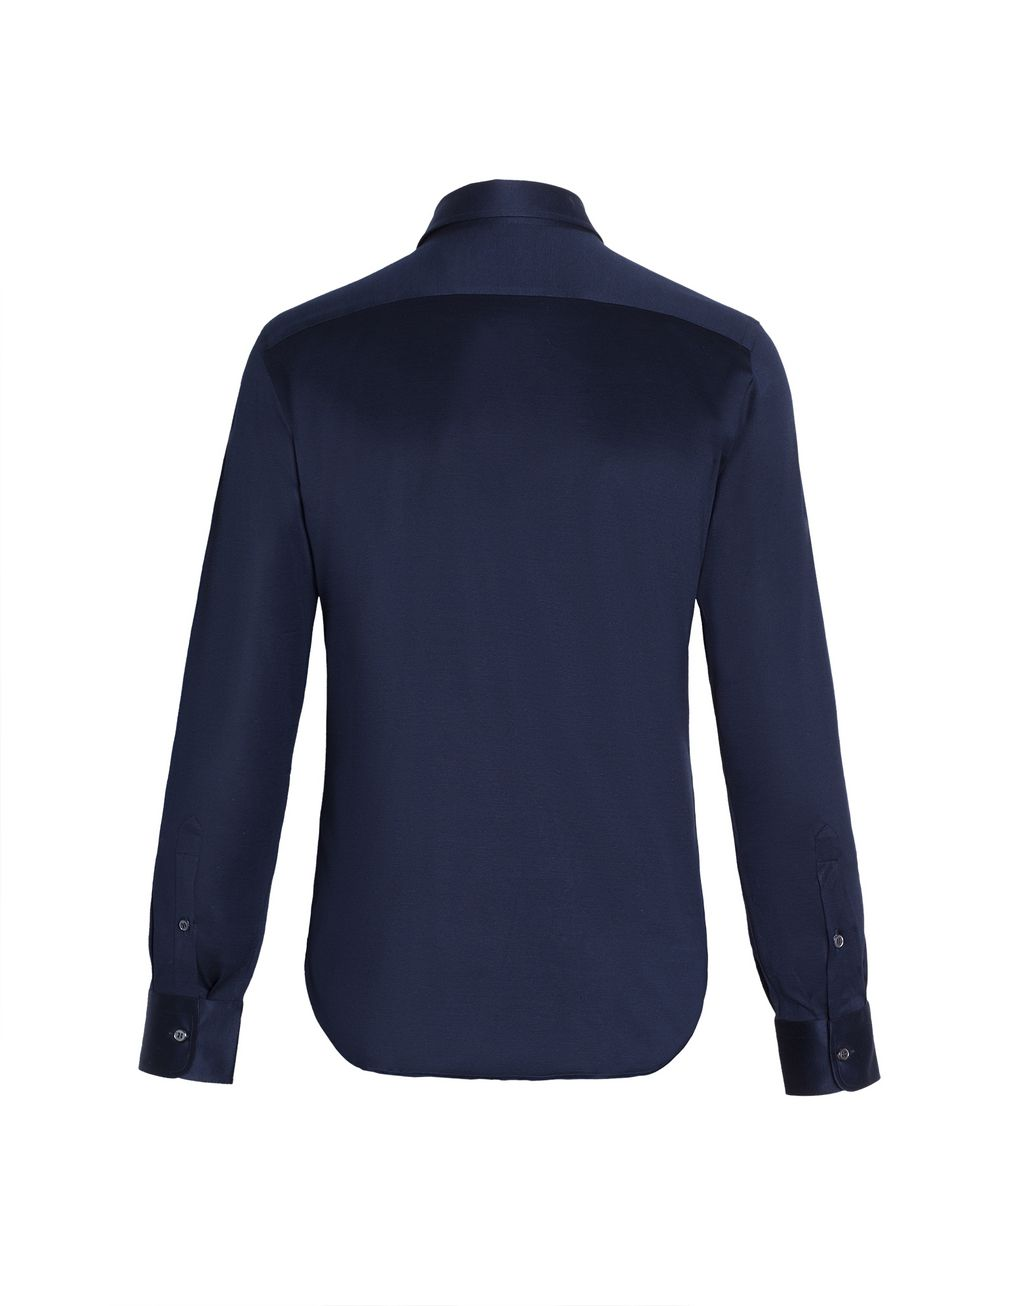 BRIONI Navy Blue Long Sleeved Logoed Jersey Shirt Leisure shirt Man d